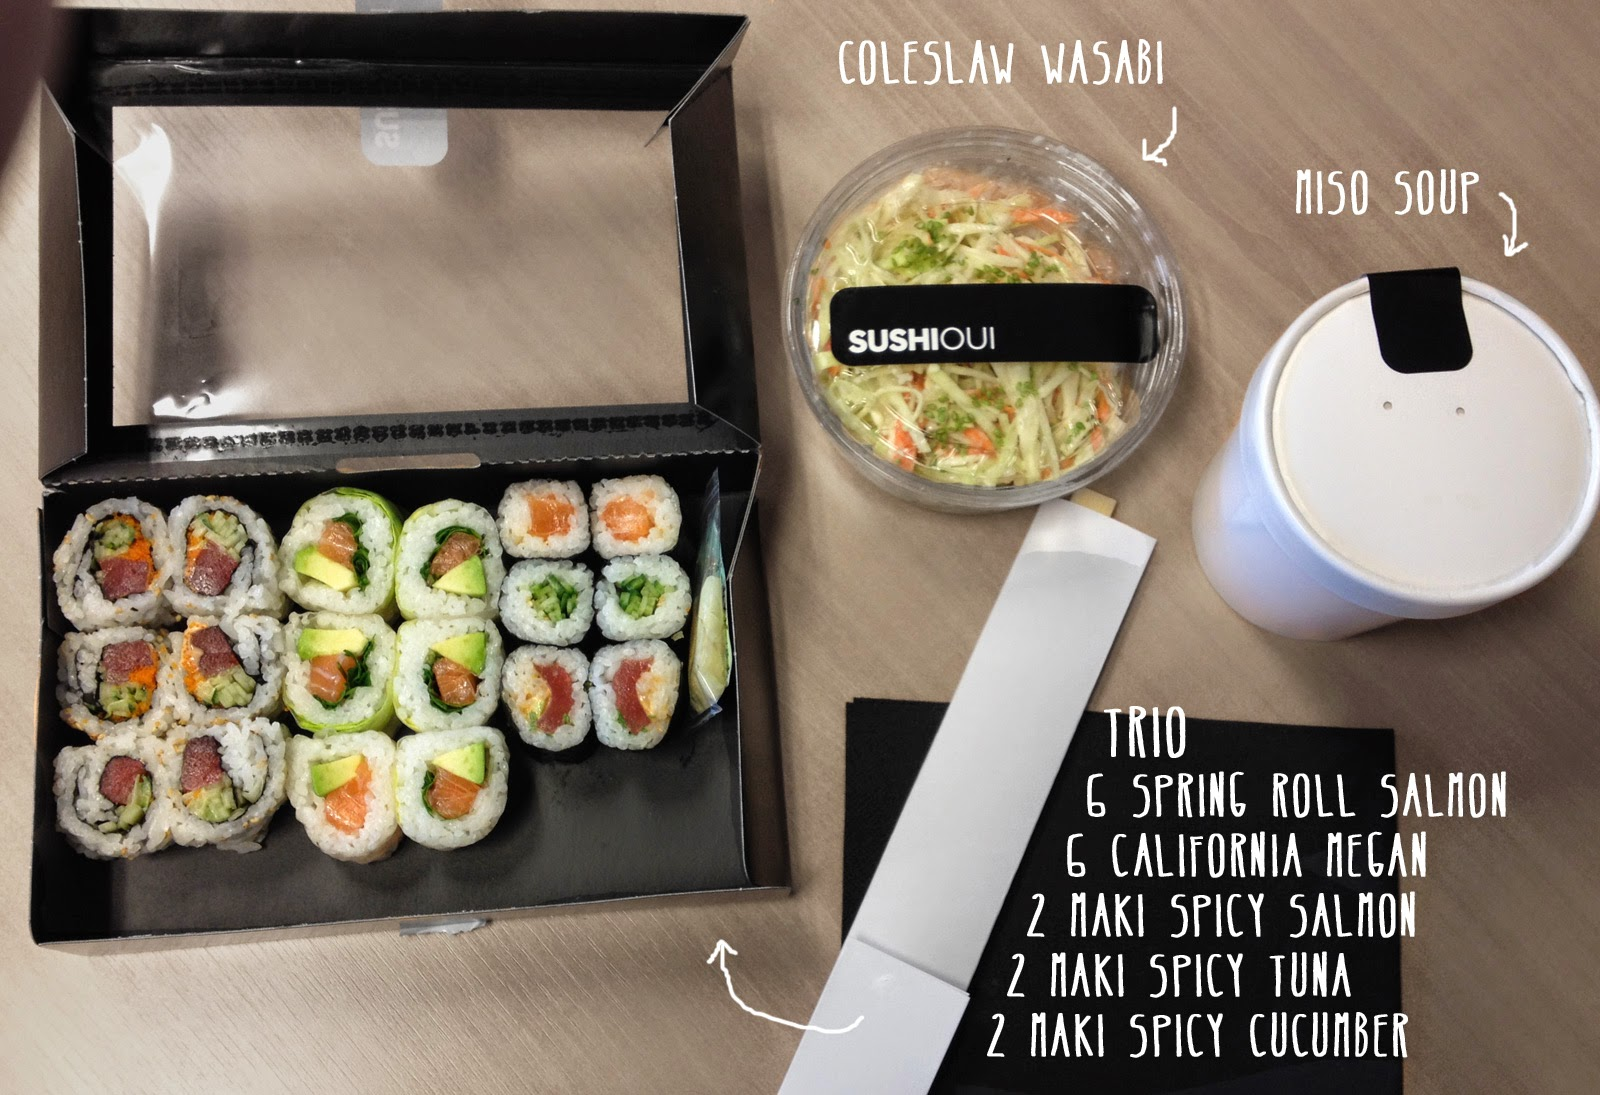 sushi oui - lunch menu